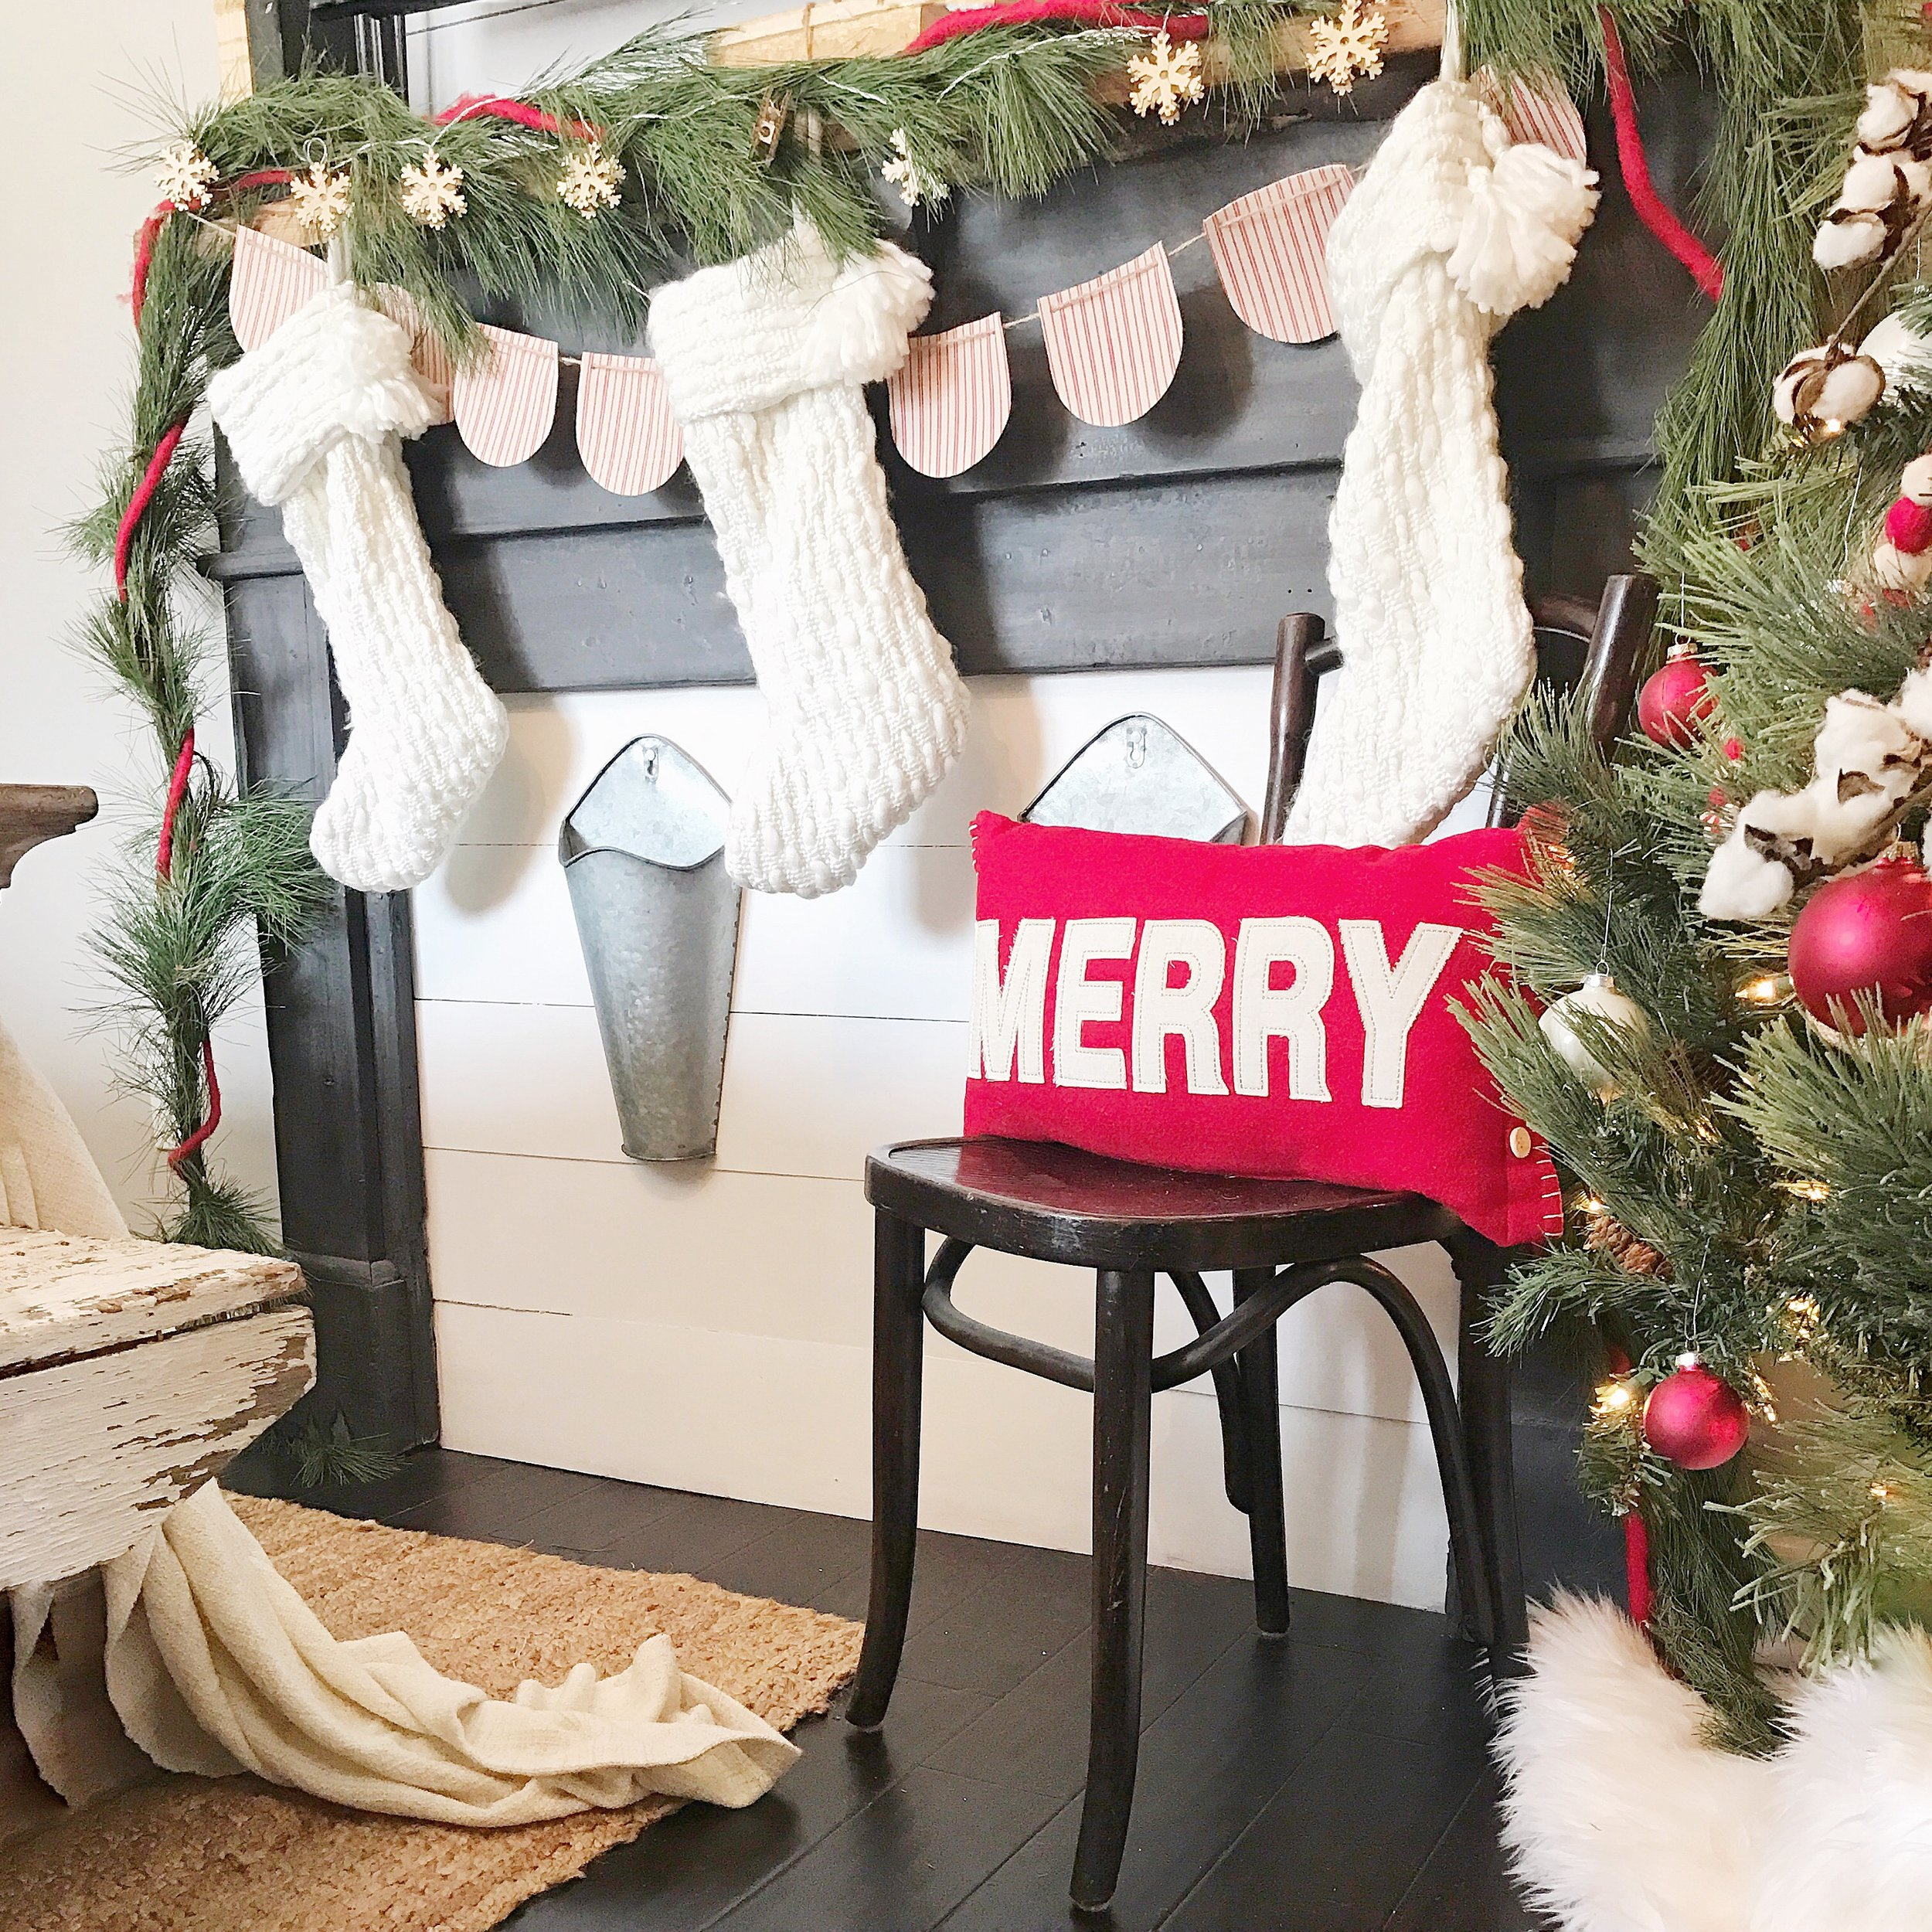 Farmhouse Christmas Bedroom Tour- Faux Fireplace with Stockings- By Kayla Miller of Plum Pretty Decor and Design